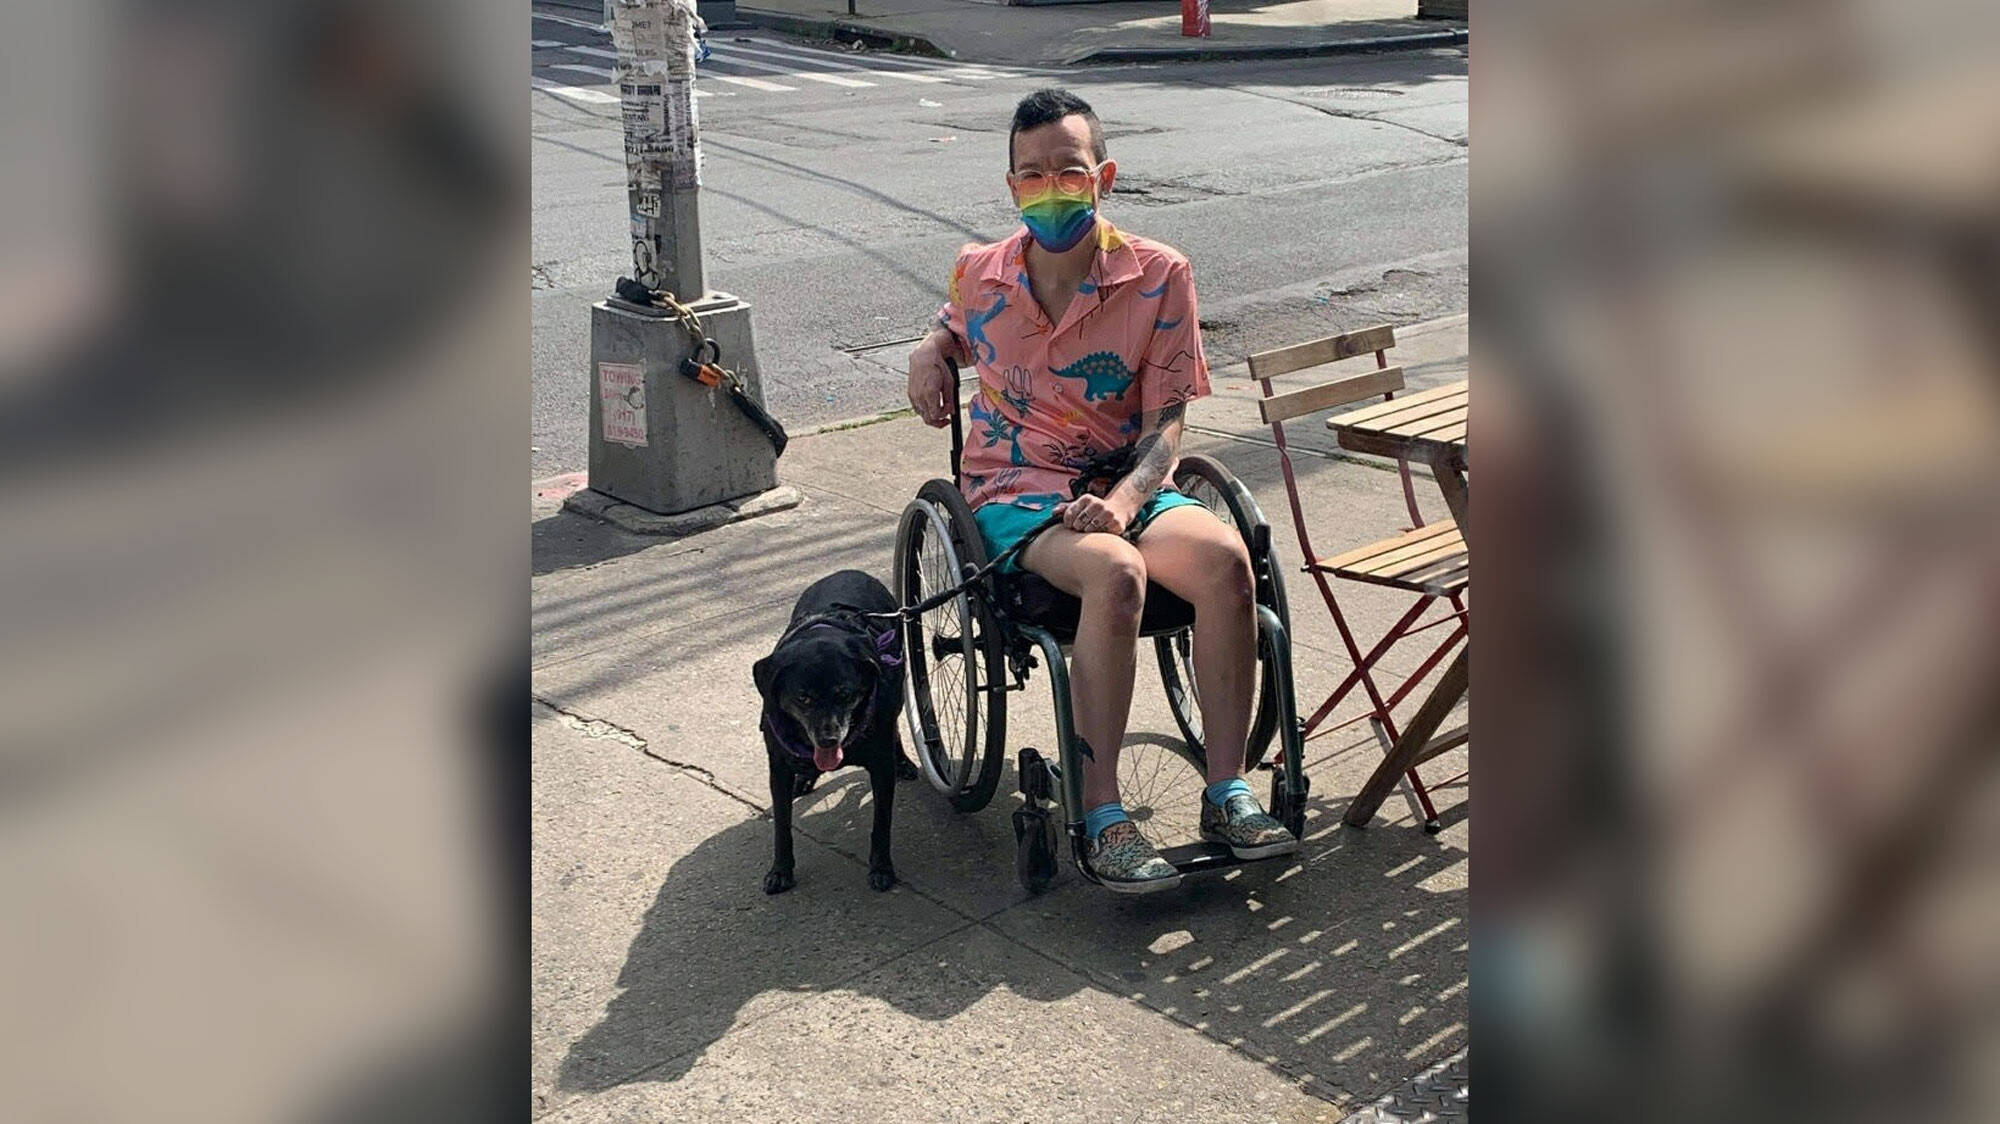 Remote work made life easier for many people with disabilities. They want the option to stay